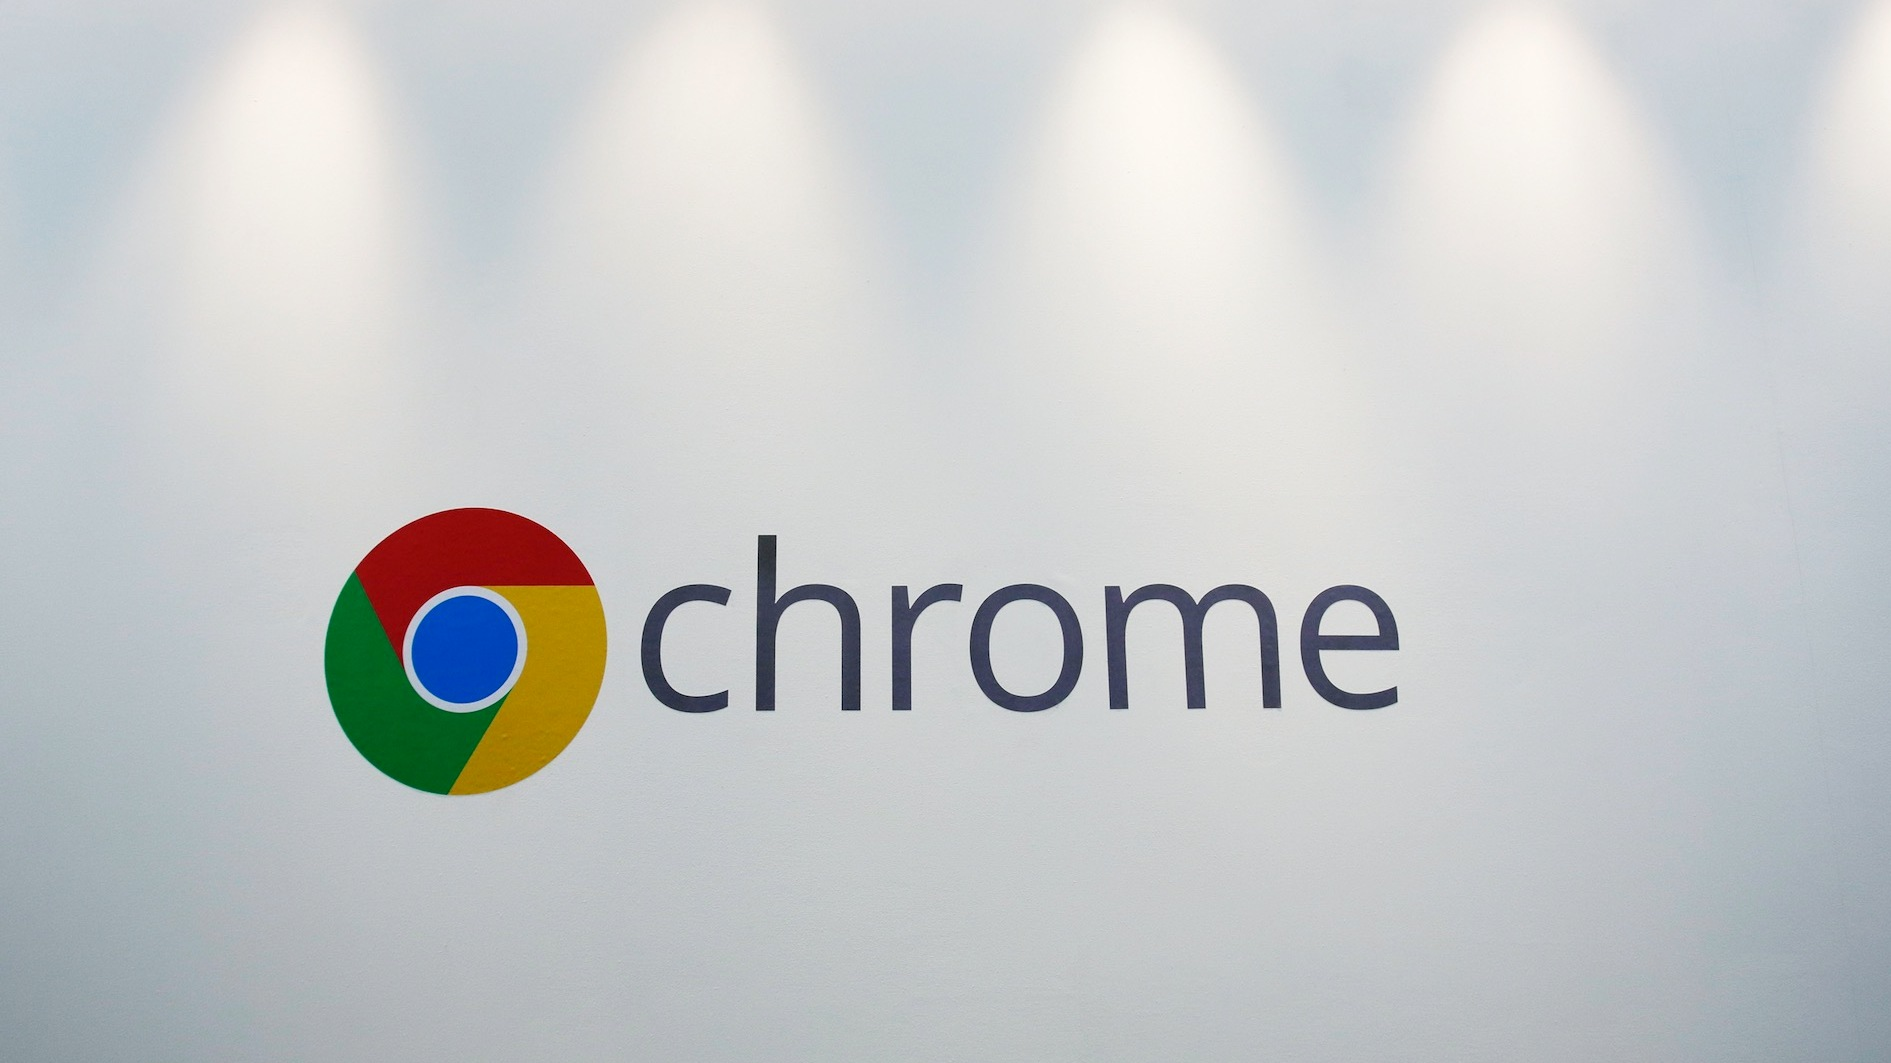 Google Plans to Make It More Difficult for Sites to Block Chrome's Incognito Mode